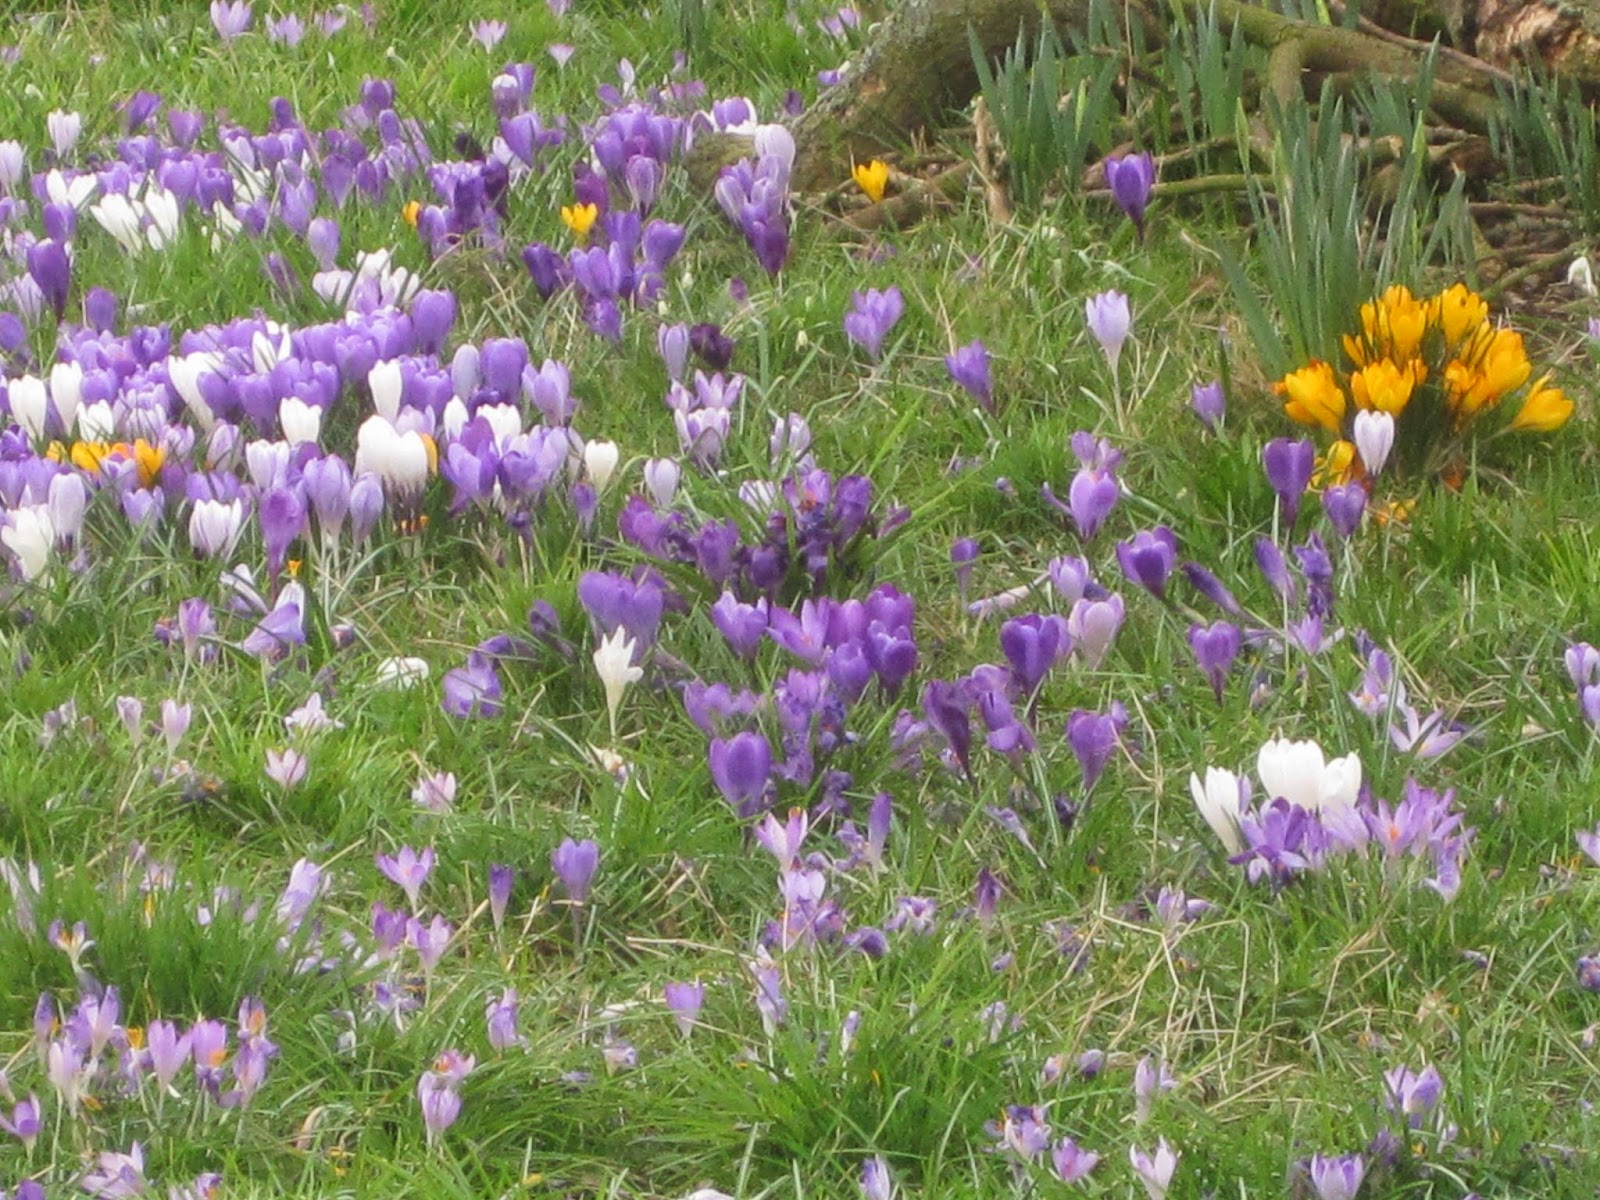 Spring Flowers, Little Bollington - March 11th, 2015